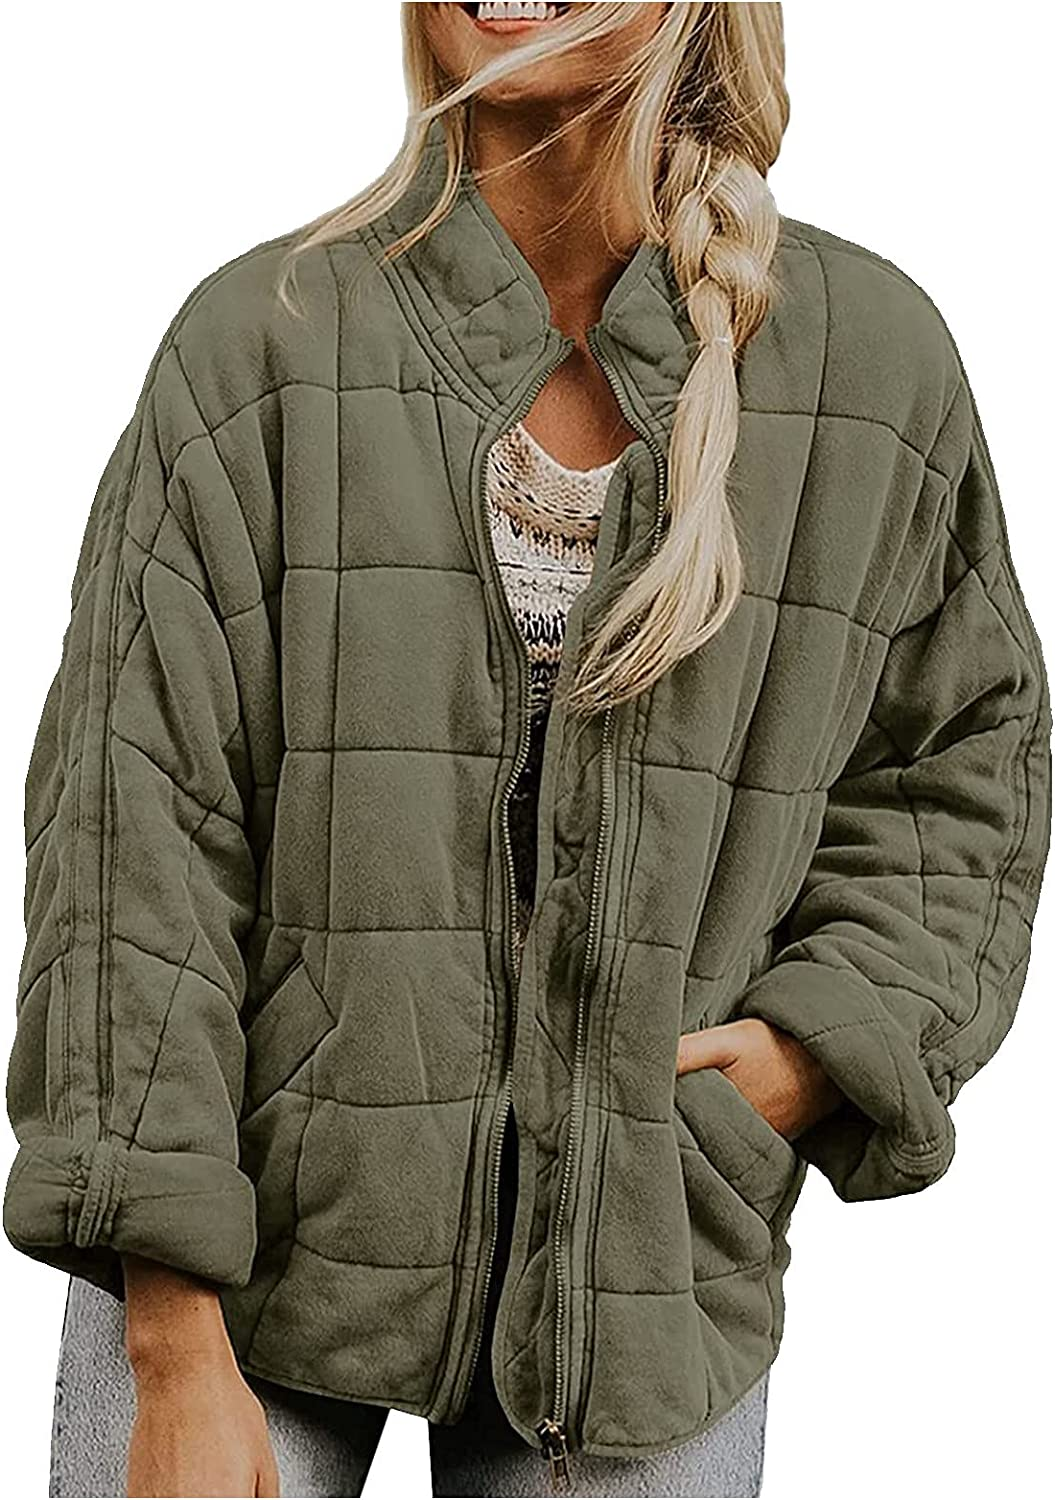 Women's Lightweight Quilted Jackets Long Sleeve Zip up Stand Neck Raglan Bomber Jacket Warm Winter Outwears with Pockets